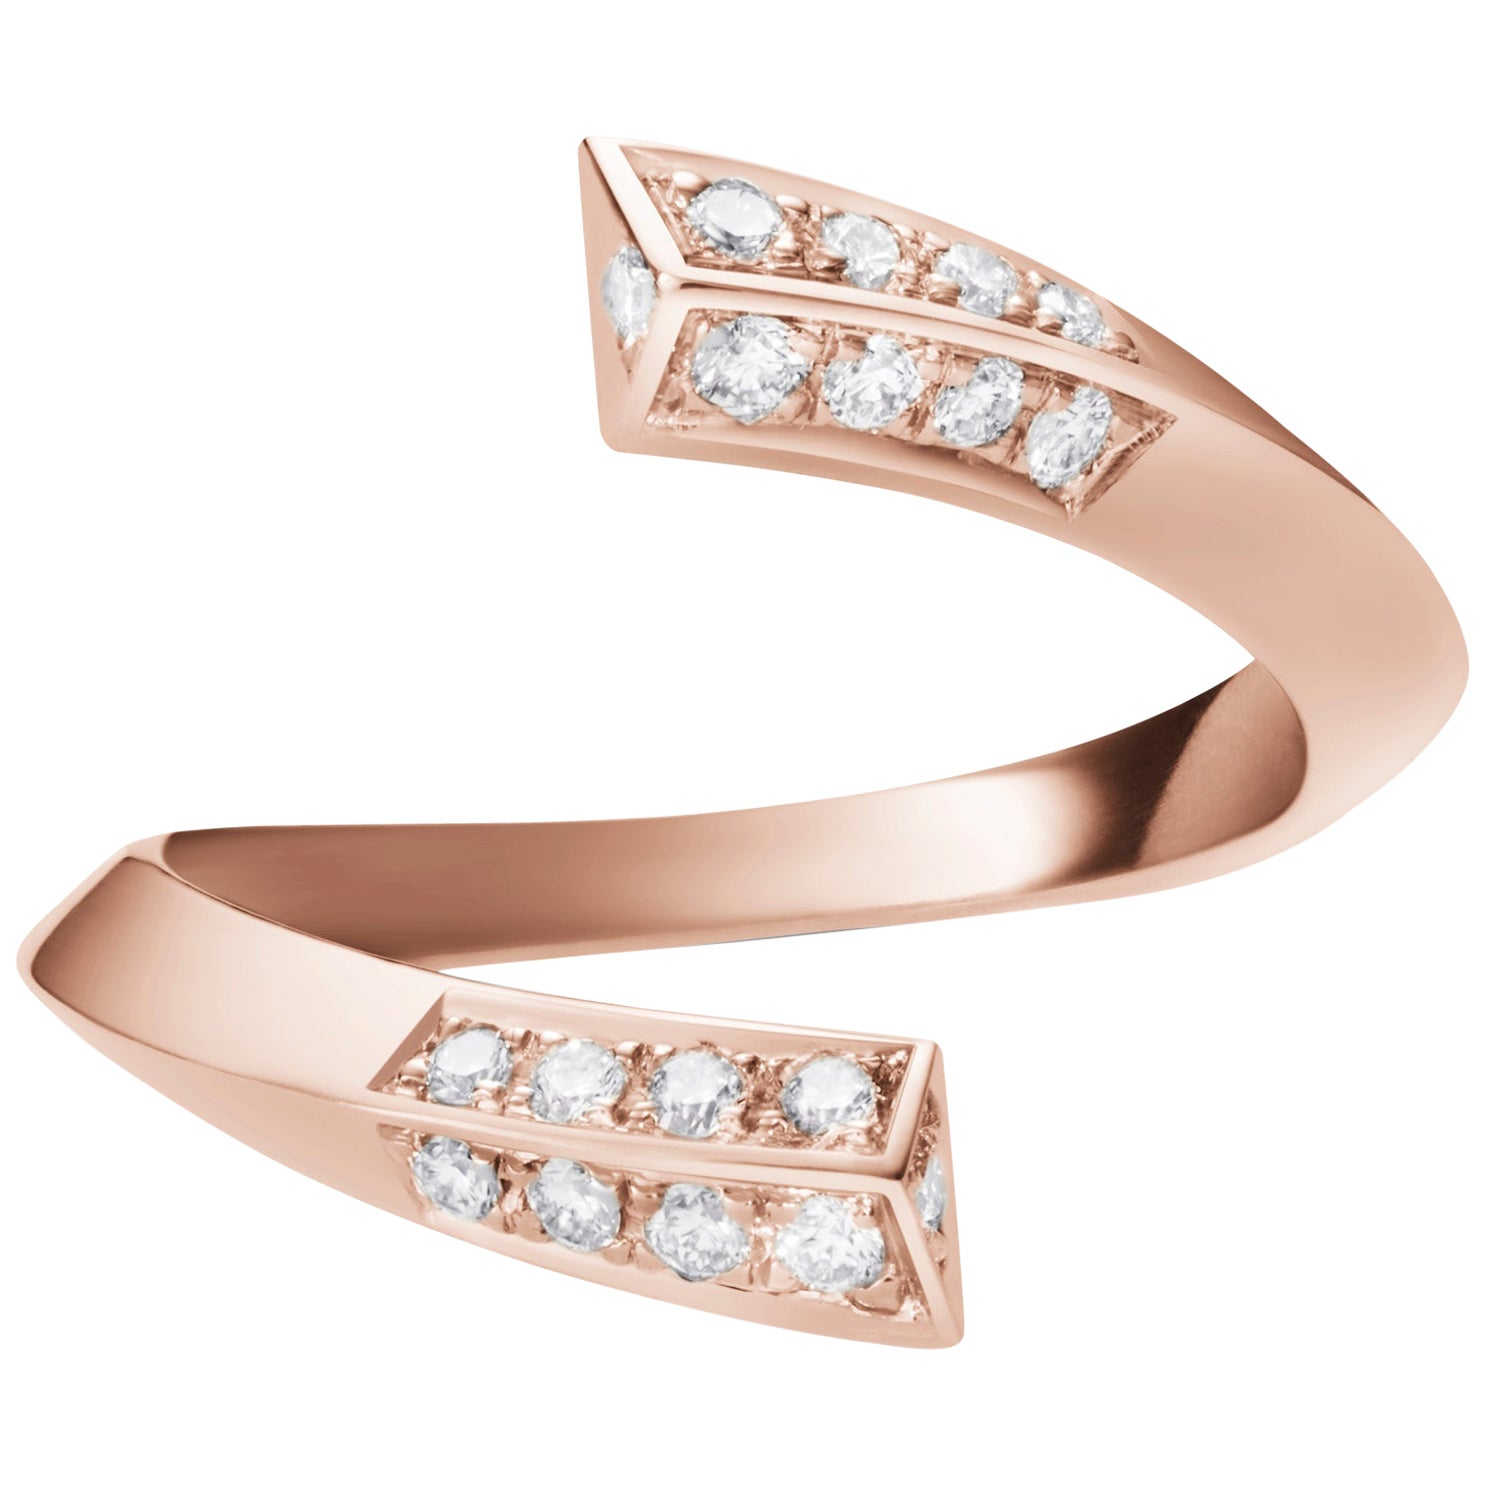 Eva Ring in Rose Gold with White Diamonds by Selin Kent